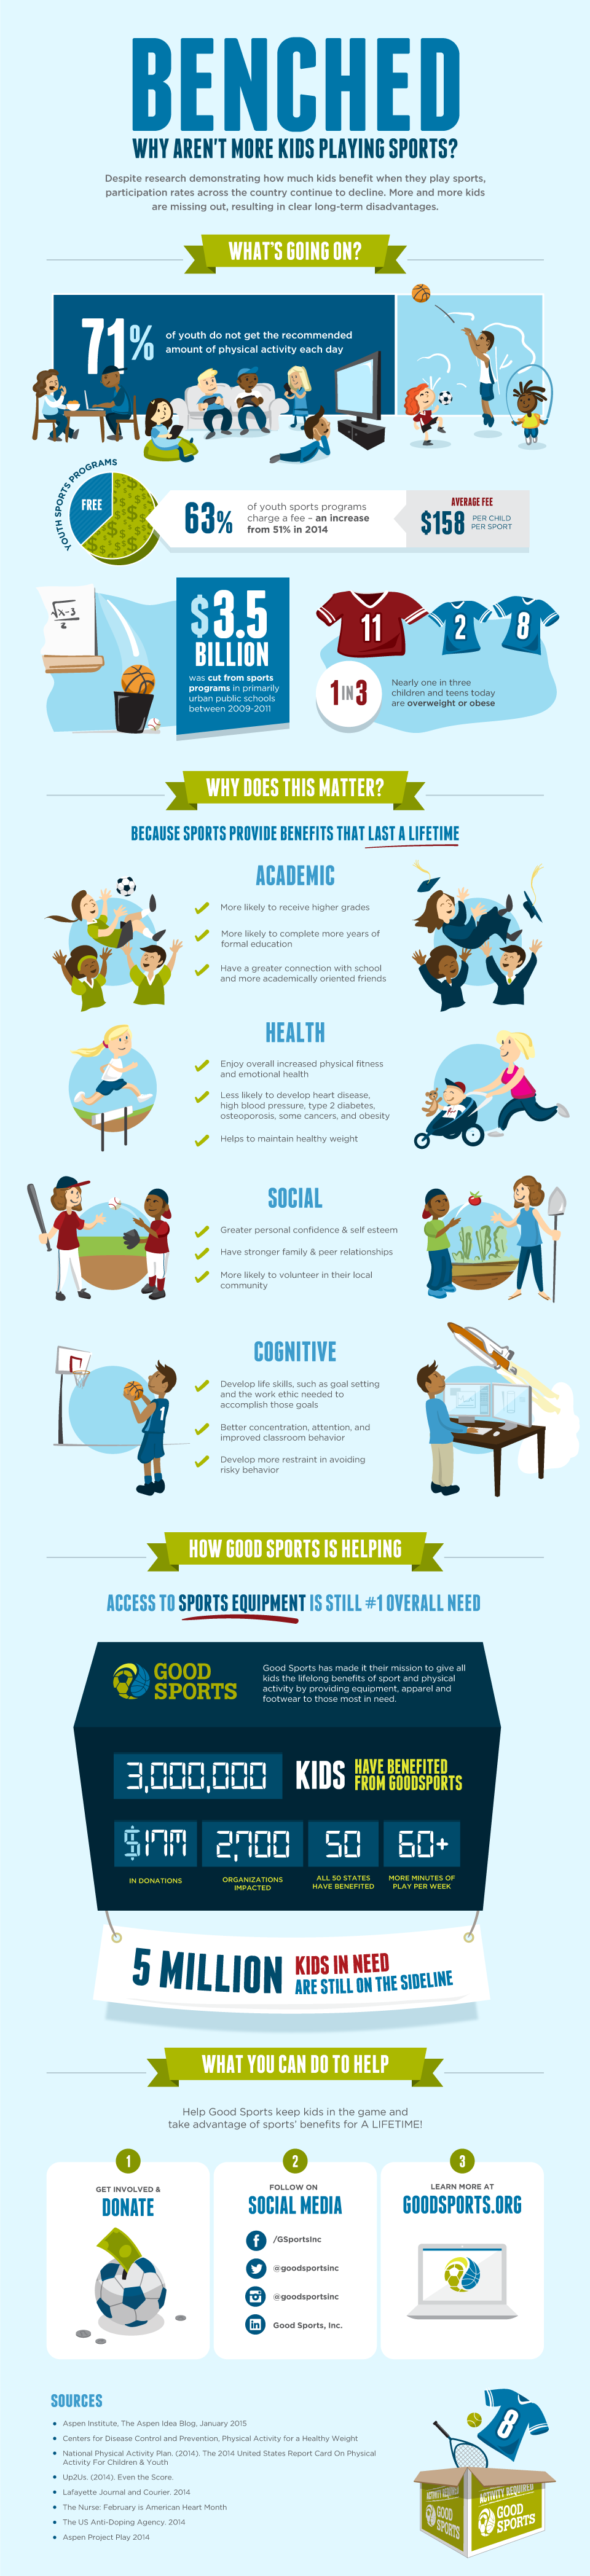 Benched – Why Aren't More Kids Playing Sports?